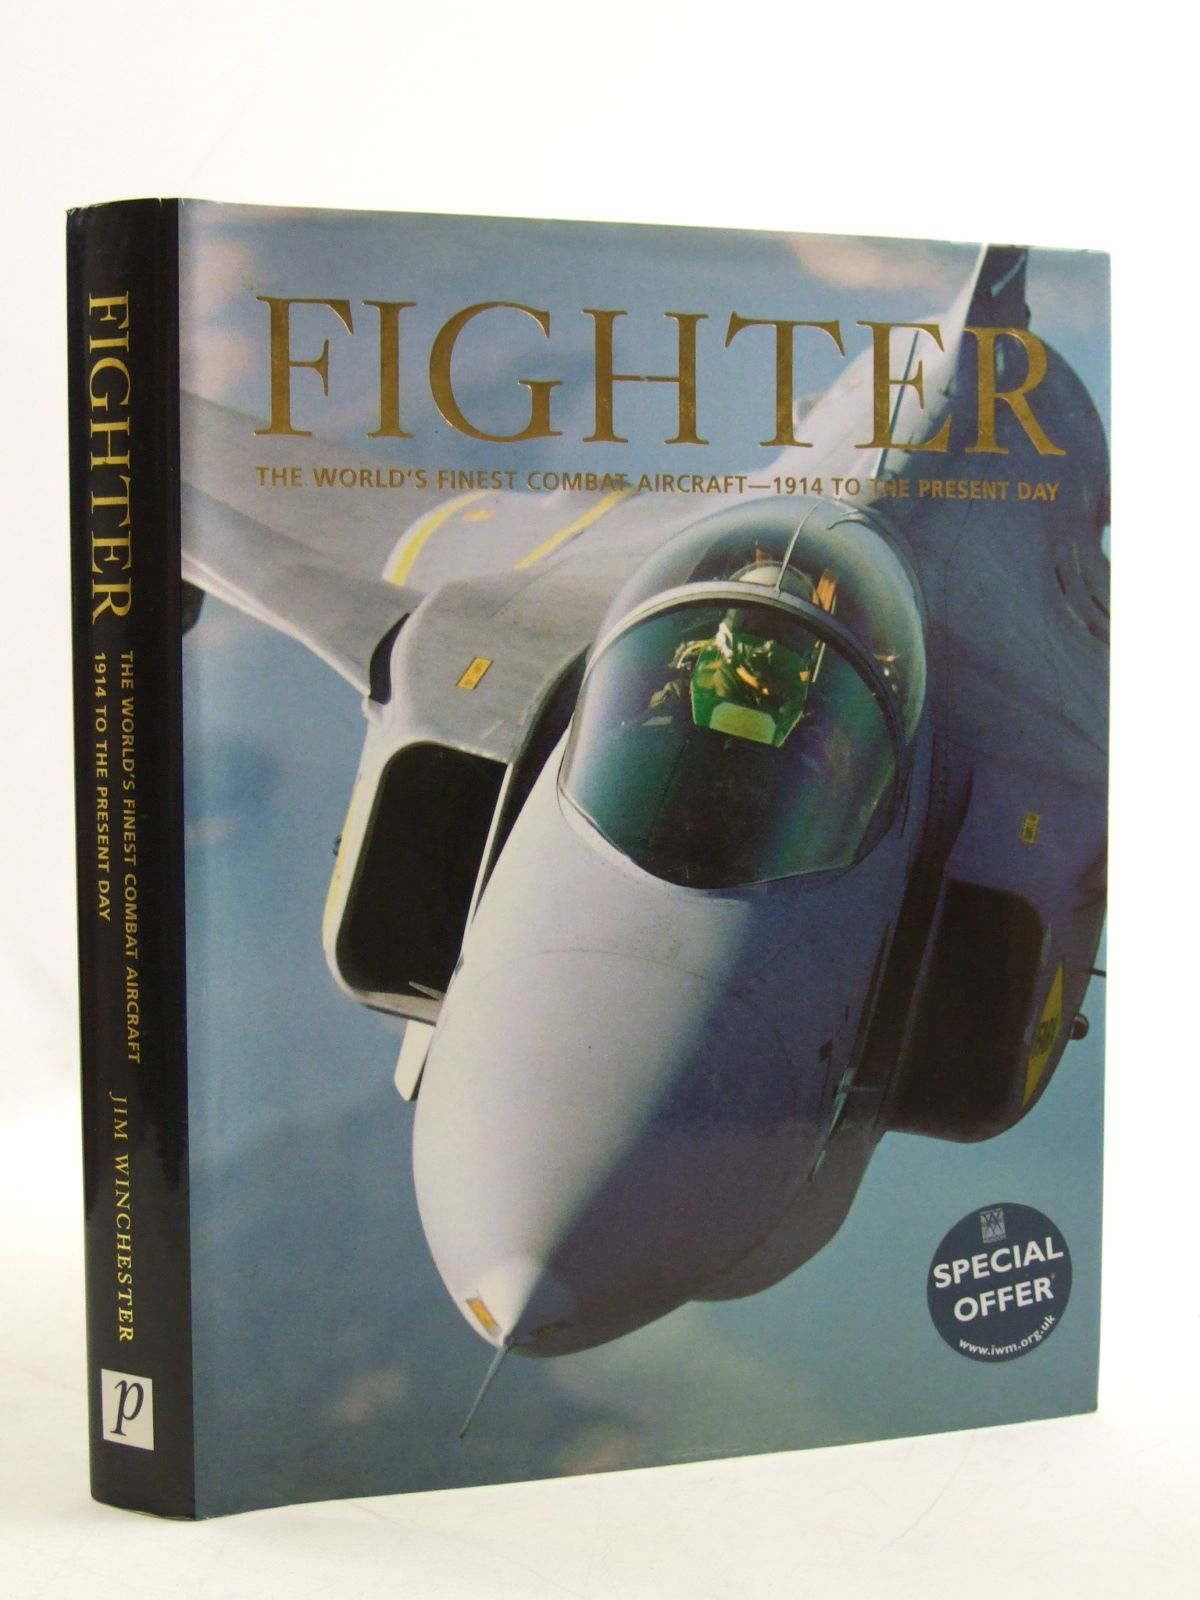 Photo of FIGHTER THE WORLD'S FINEST COMBAT AIRCRAFT - 1914 TO THE PRESENT DAY written by Winchester, Jim published by Parragon (STOCK CODE: 1604425)  for sale by Stella & Rose's Books